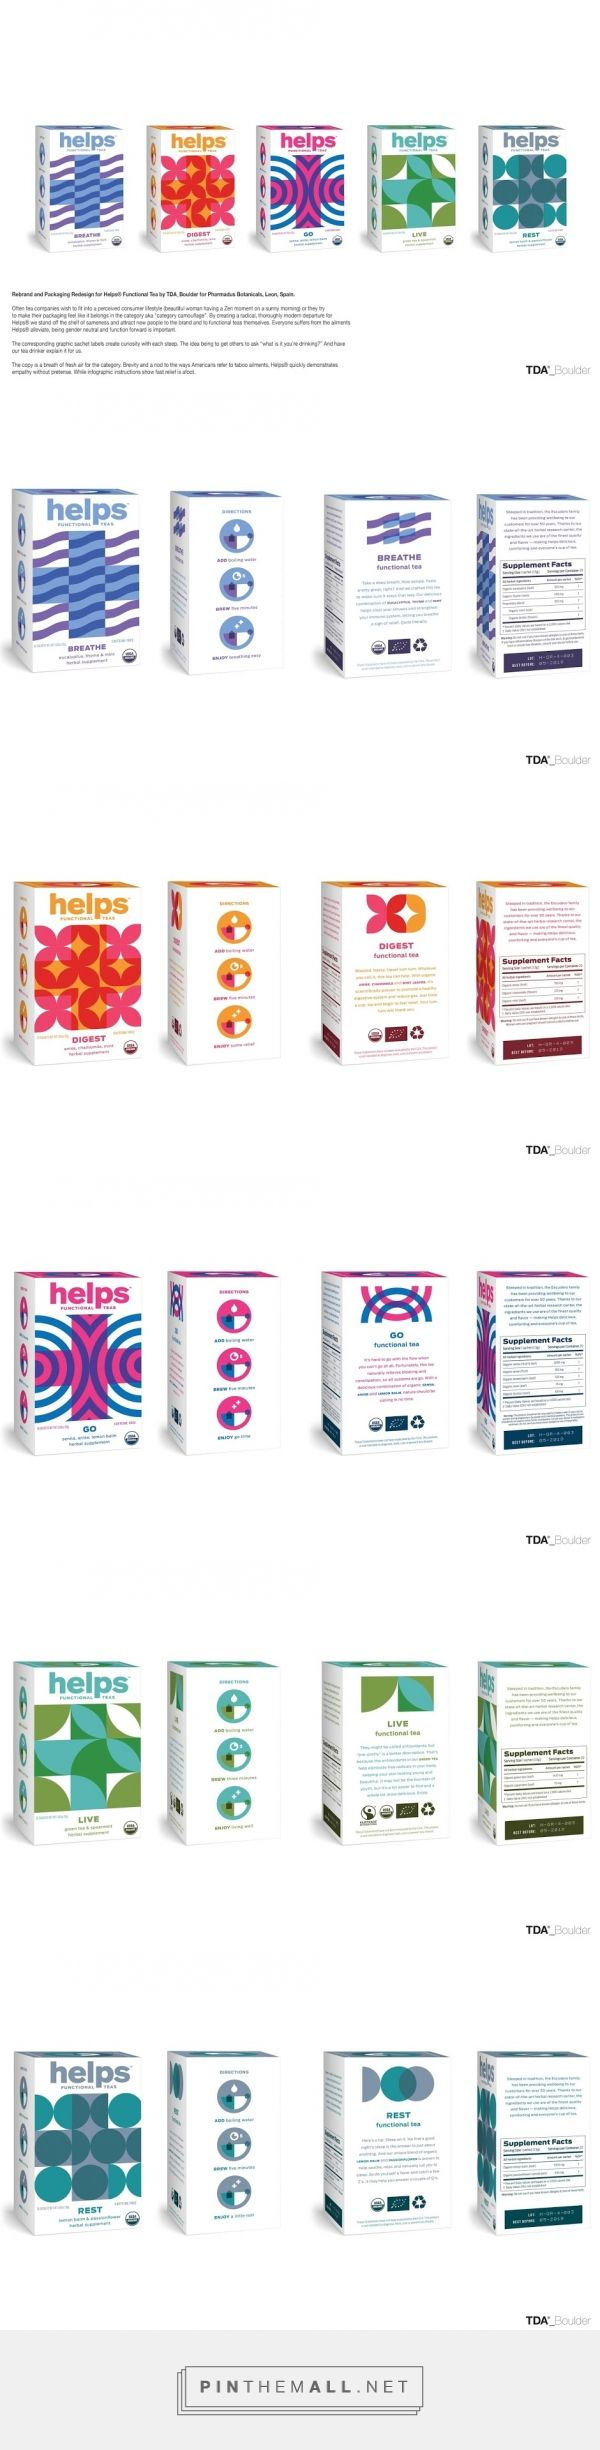 Helps Tea - Packaging of the World - Creative Package Design Gallery - http://www.packagingoftheworld.com/2016/05/helps-tea.html